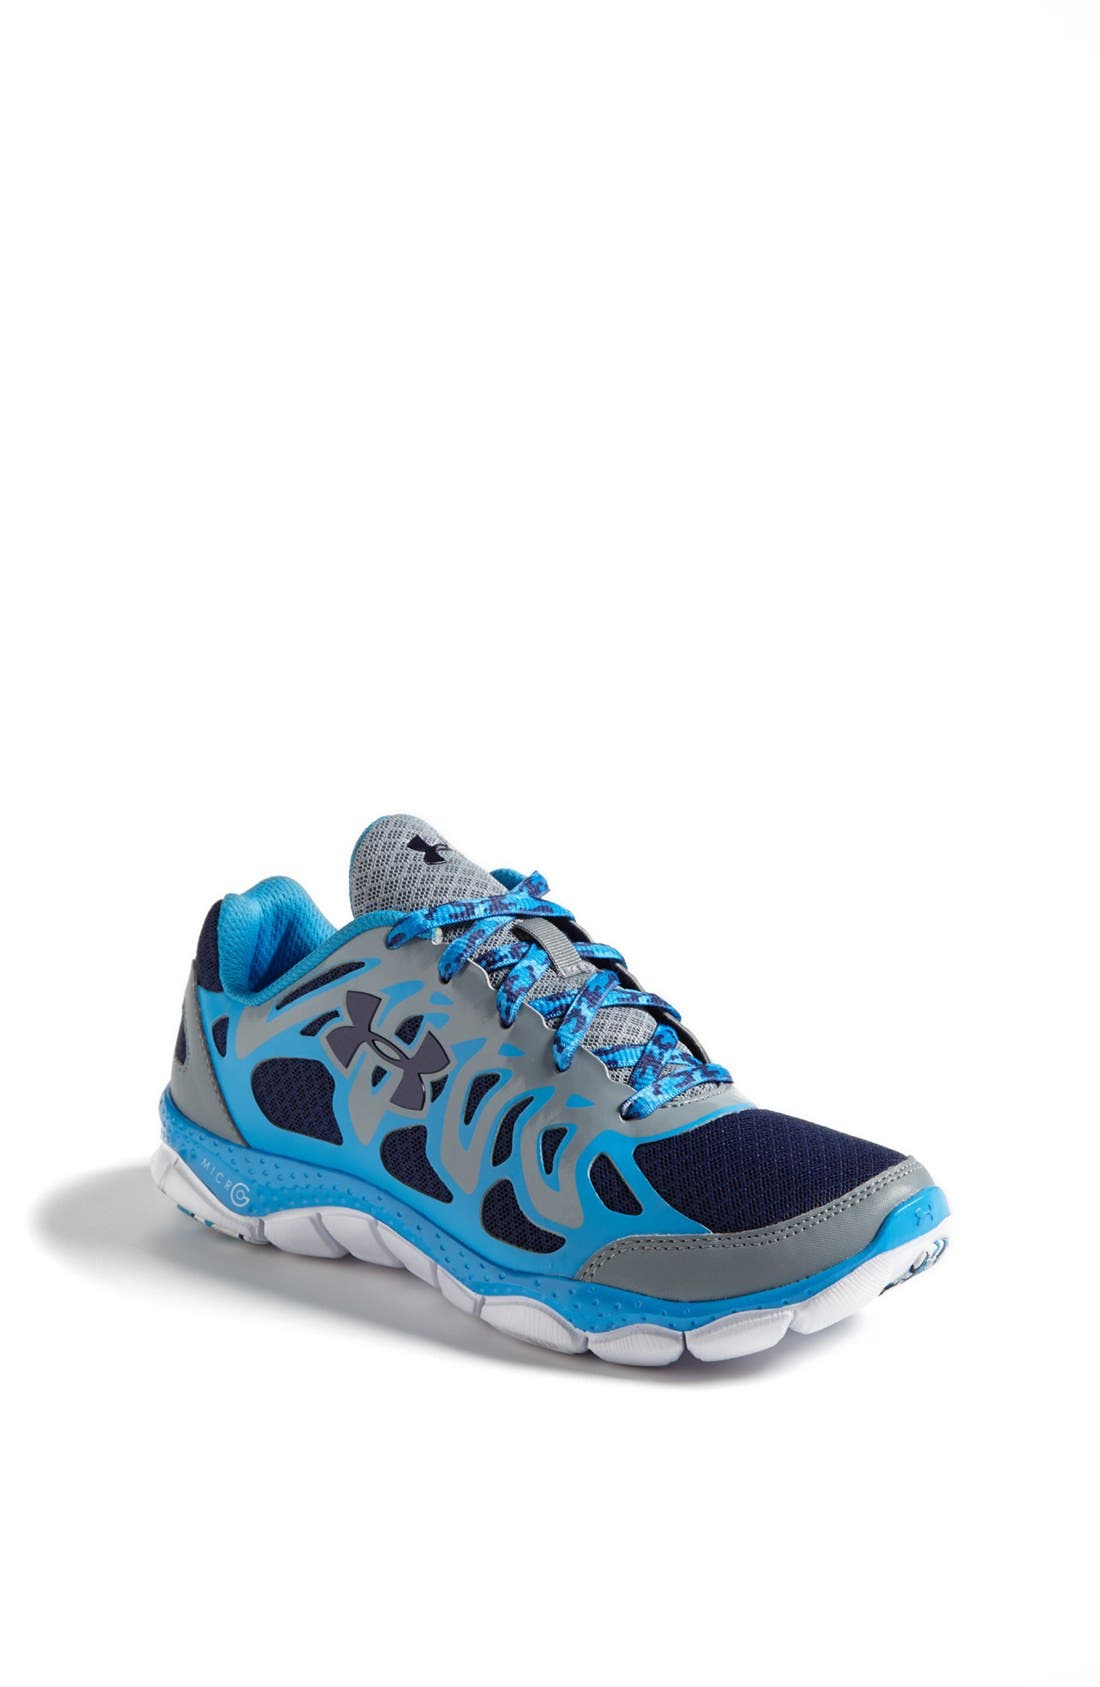 Alternate Image 1 Selected - Under Armour 'Micro G™ Engage' Athletic Shoe (Big Kid)